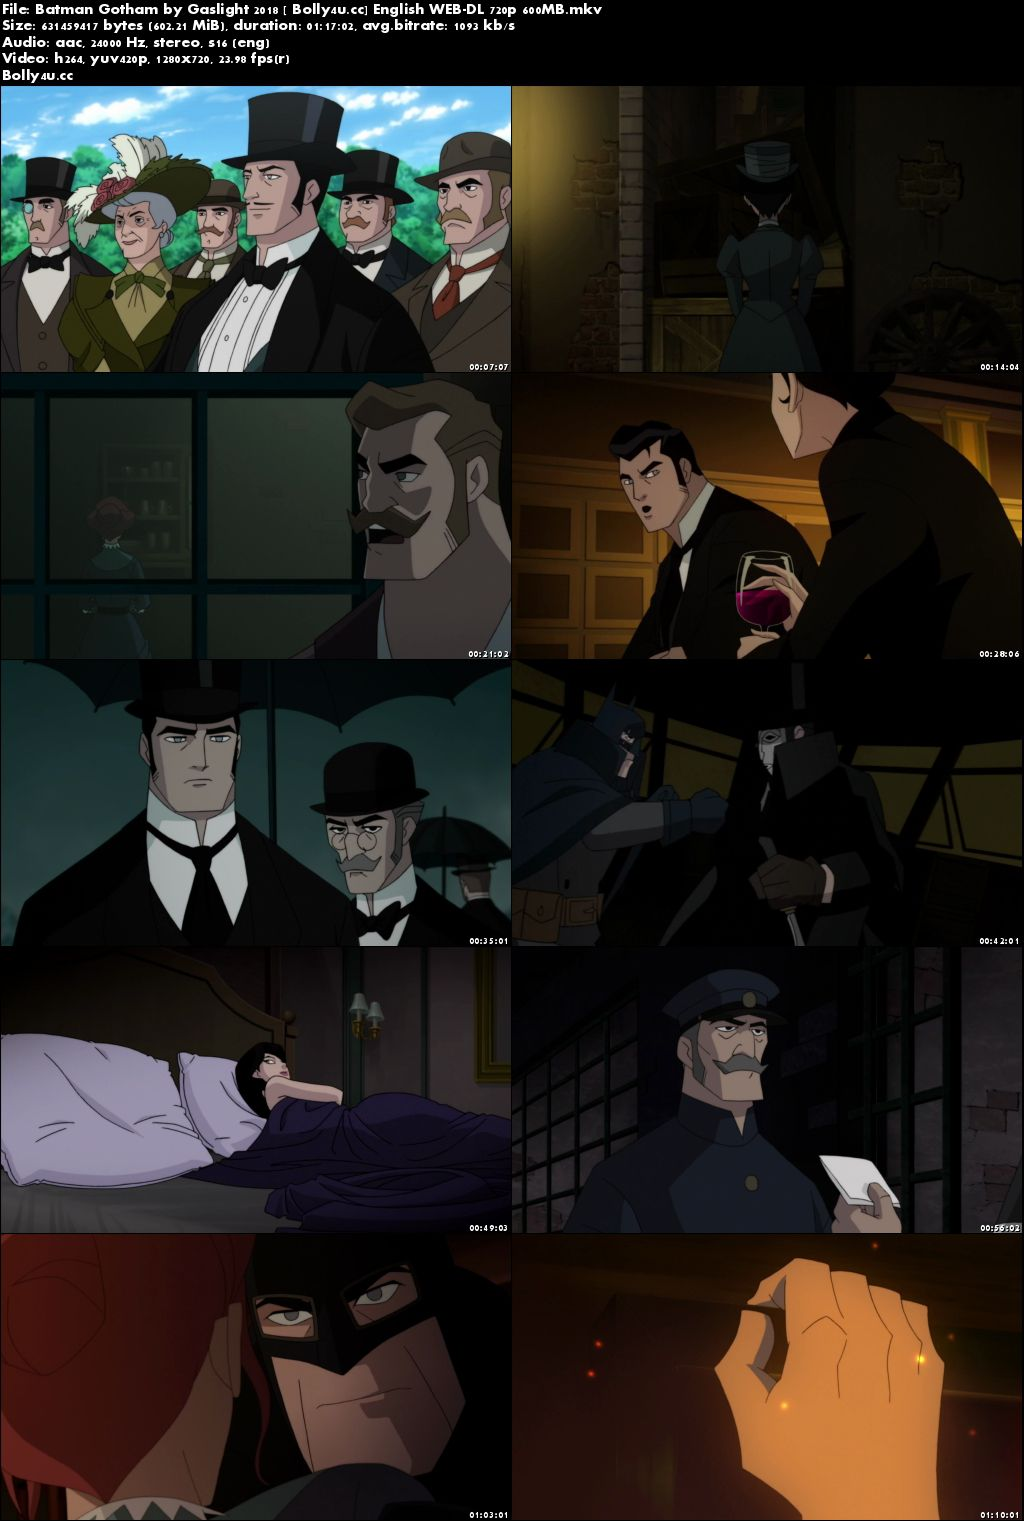 Batman Gotham by Gaslight 2018 WEB-DL 250MB English 480p Download